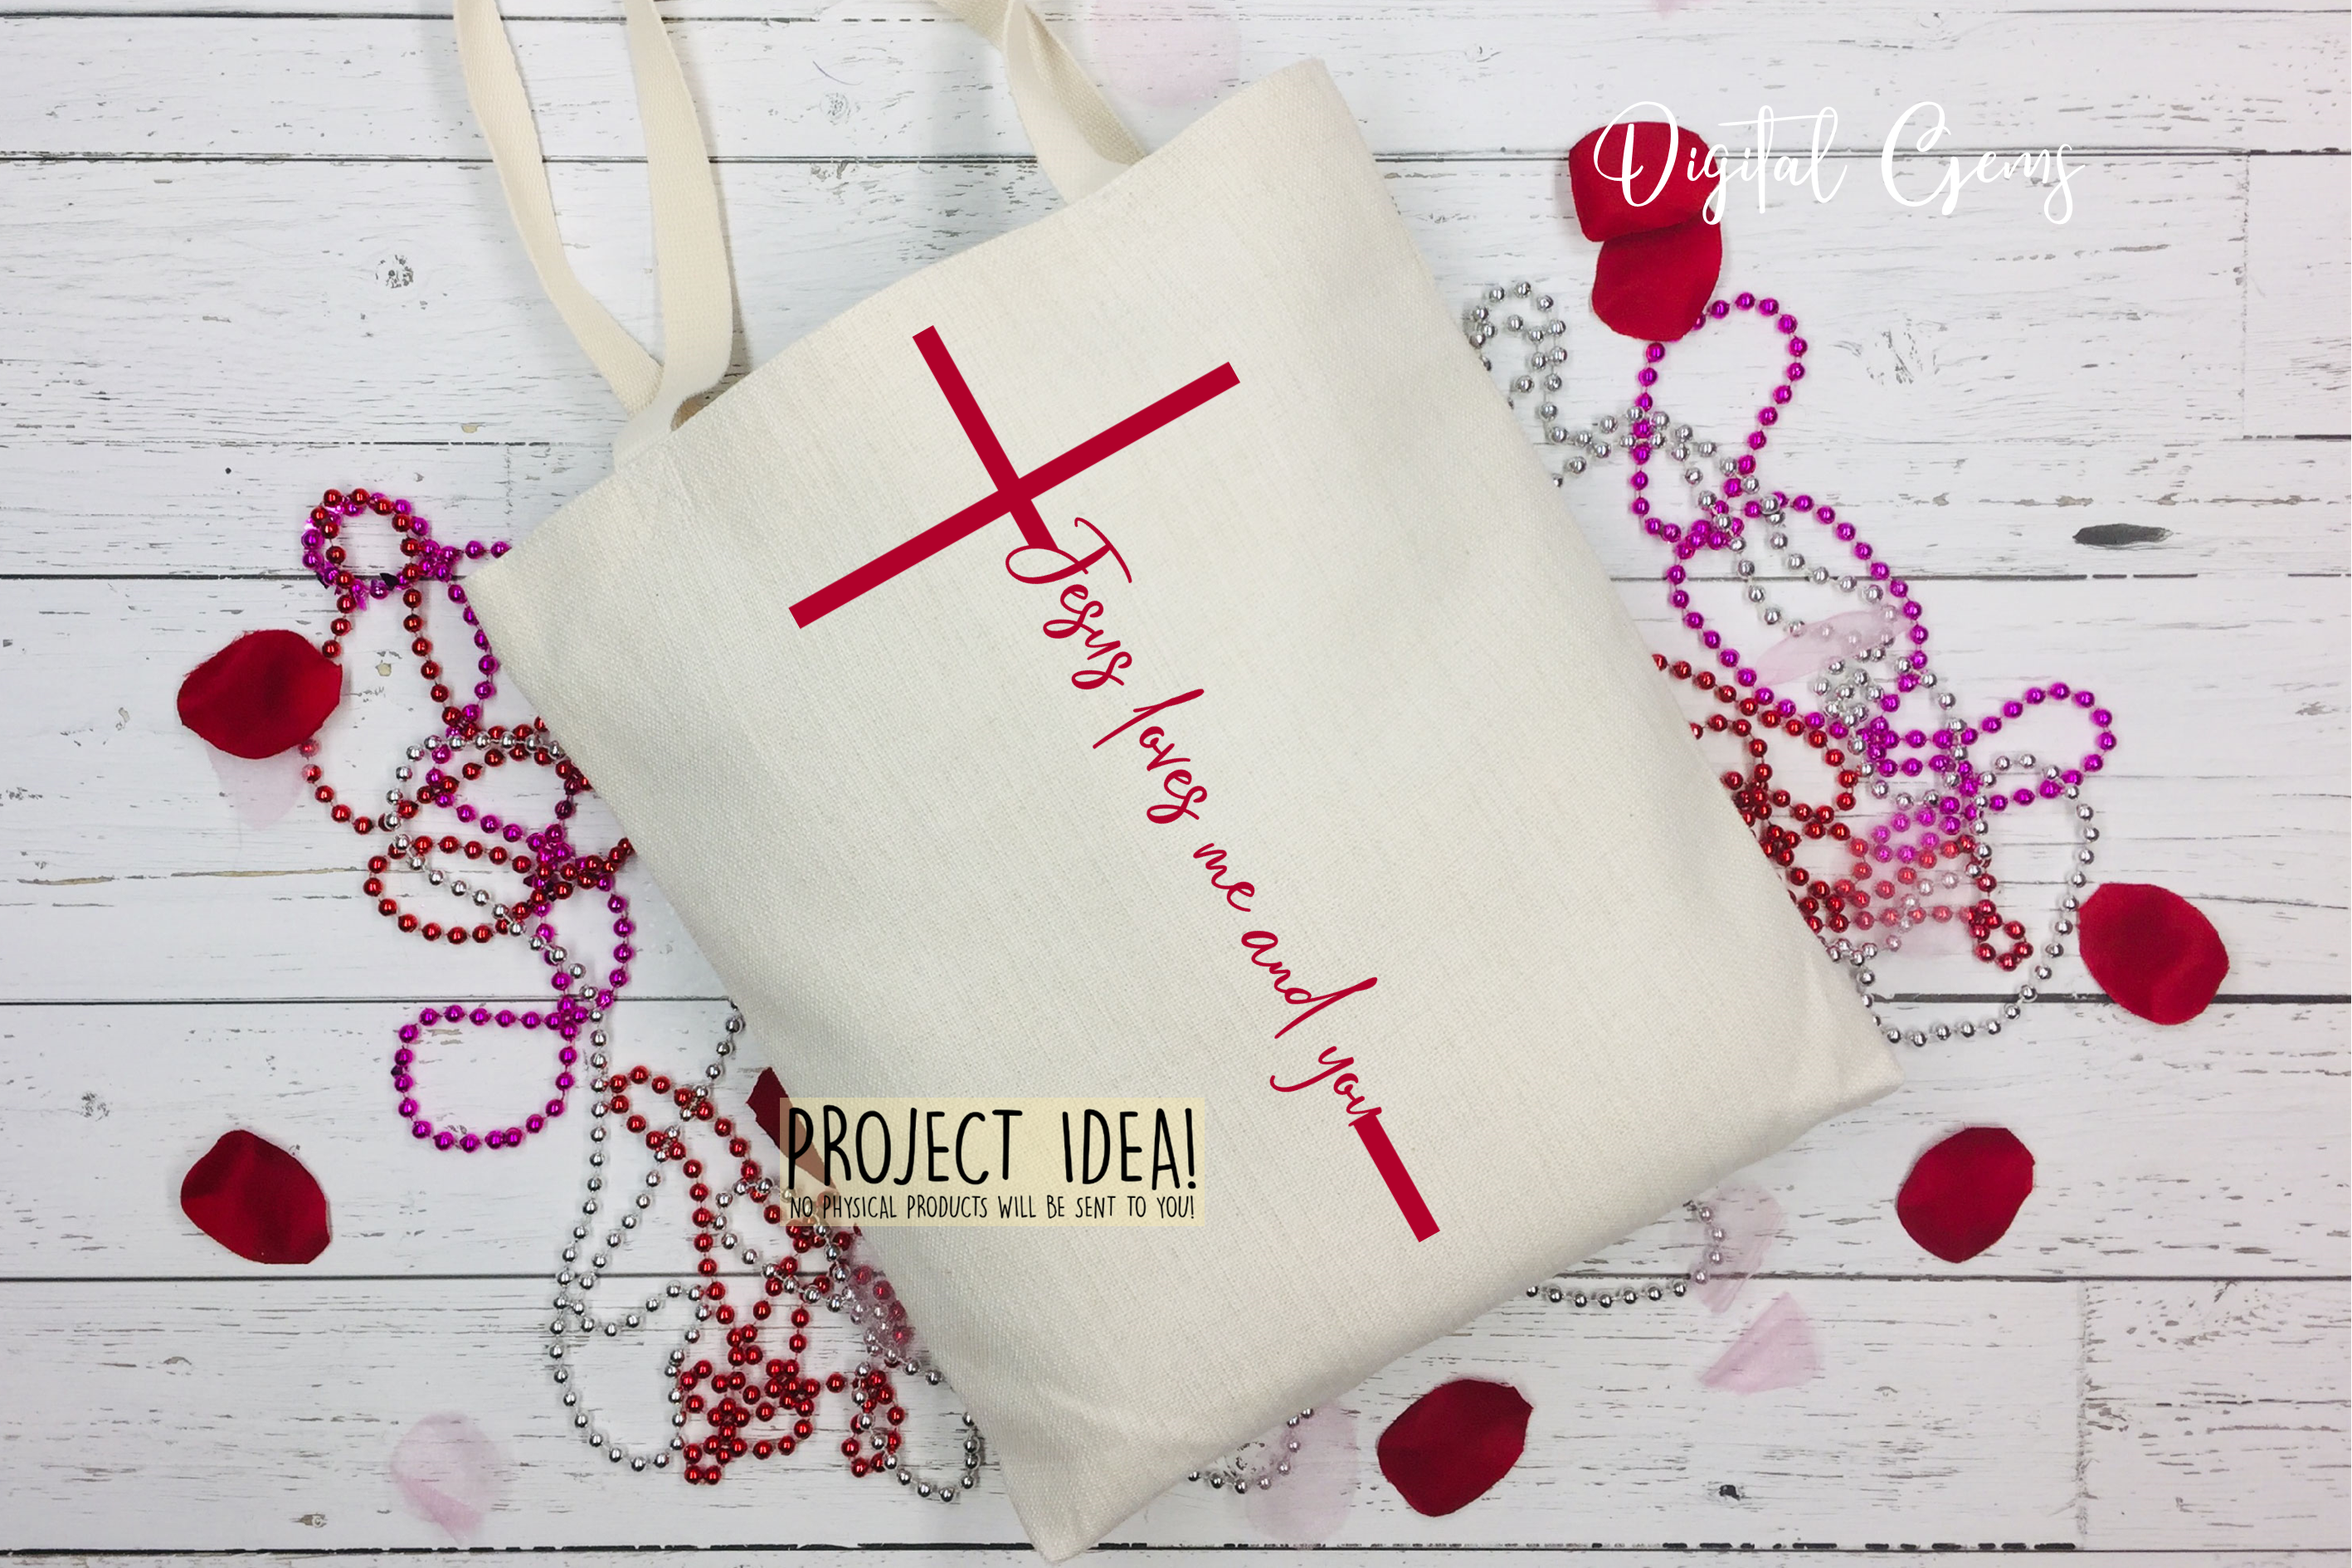 Jesus loves me and you SVG / PNG / EPS / DXF files example image 6